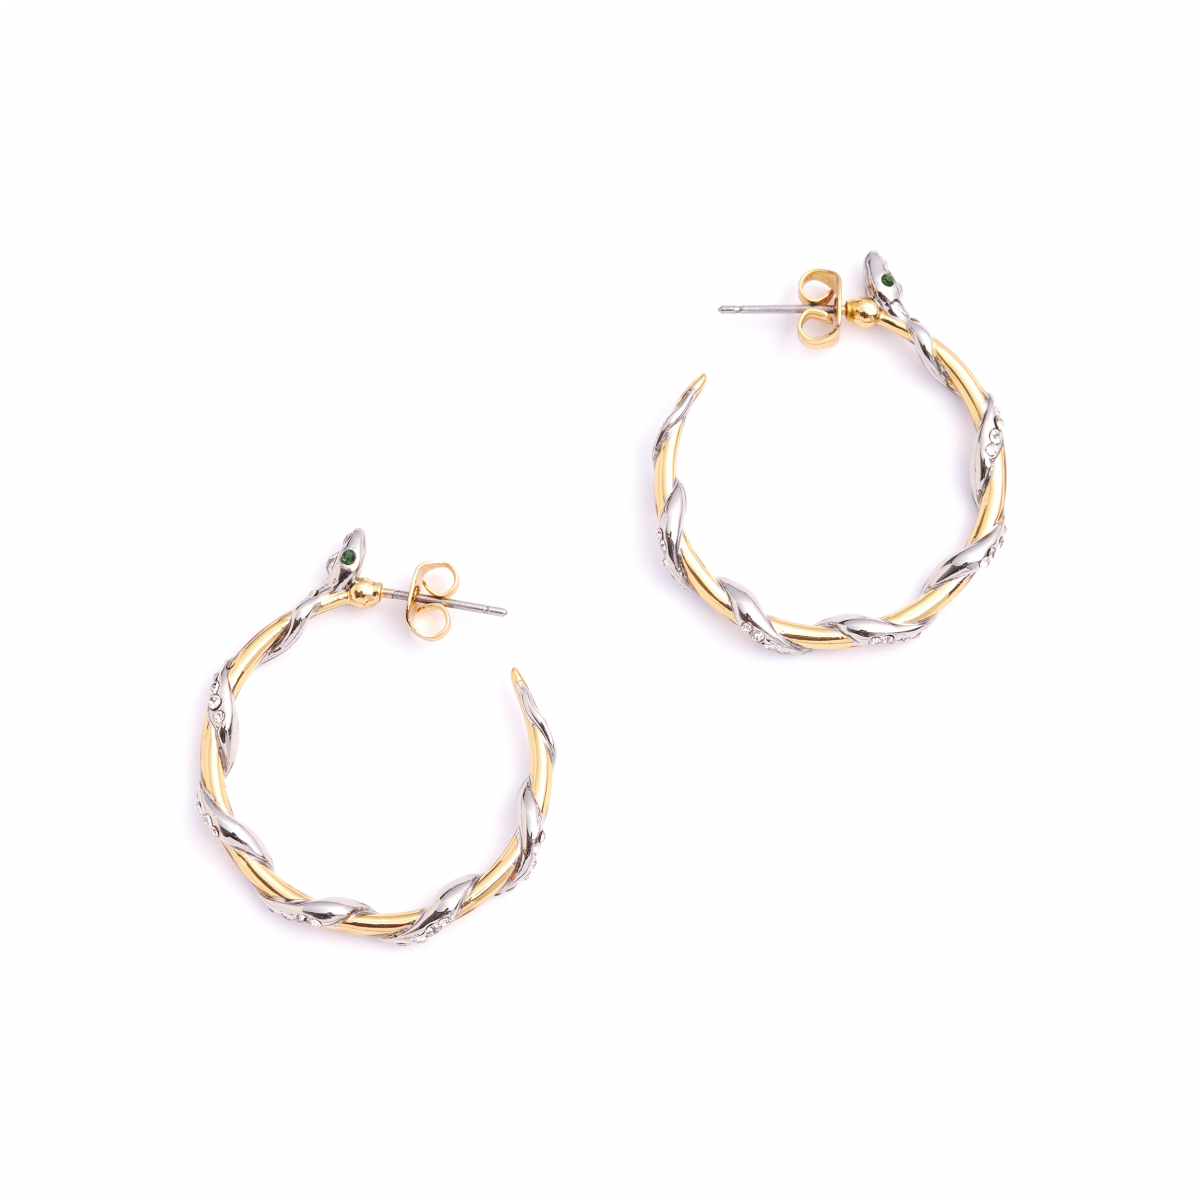 Bejewelled Snake Hoops